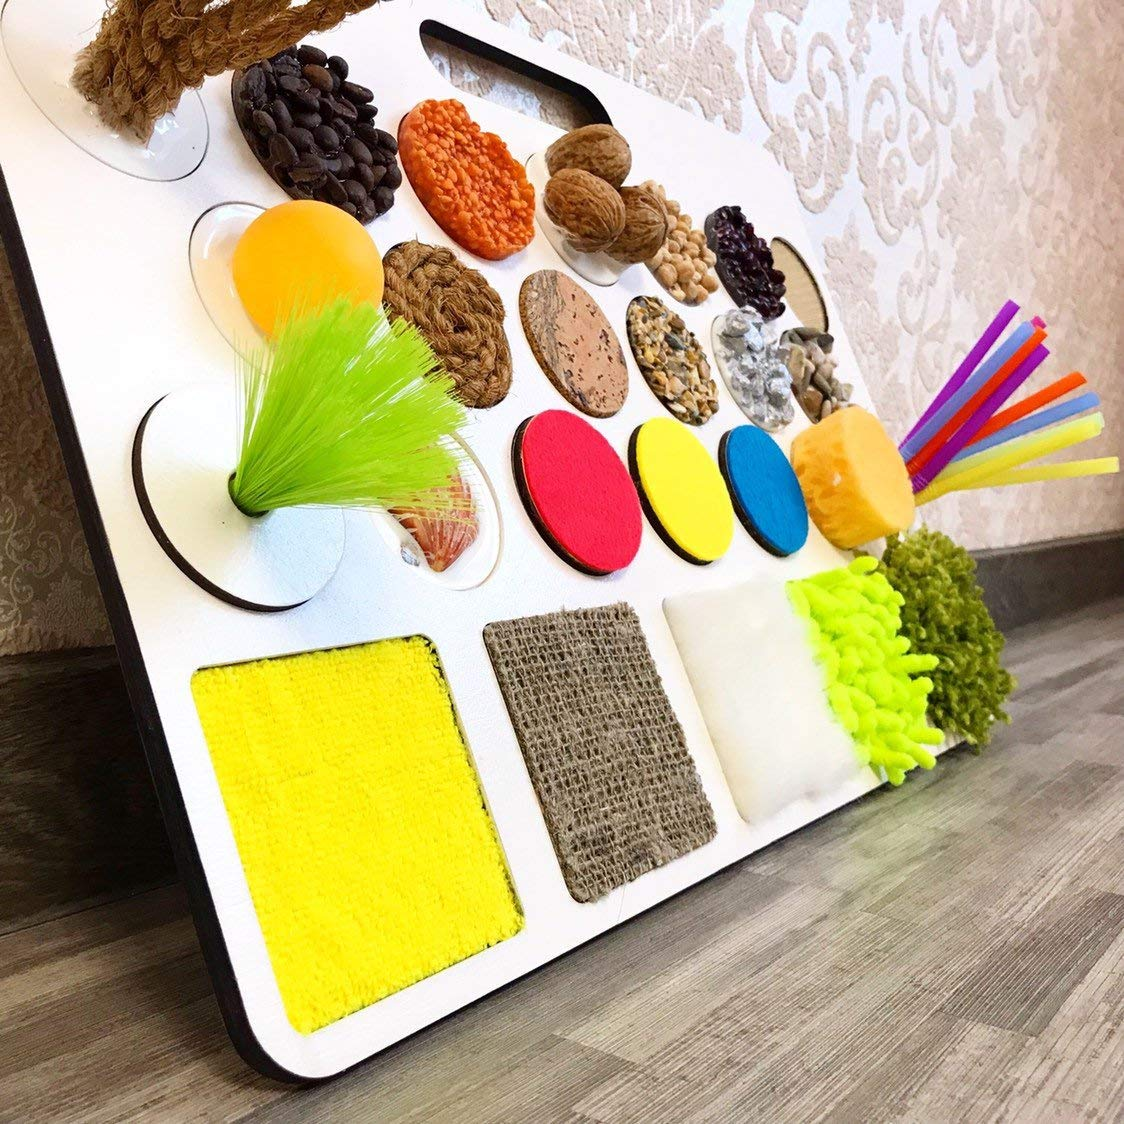 Sensory board, Busy board, Educational toy, Montessori toy, Activity board wooden toddler toy 1st birthday 1 year toy kids